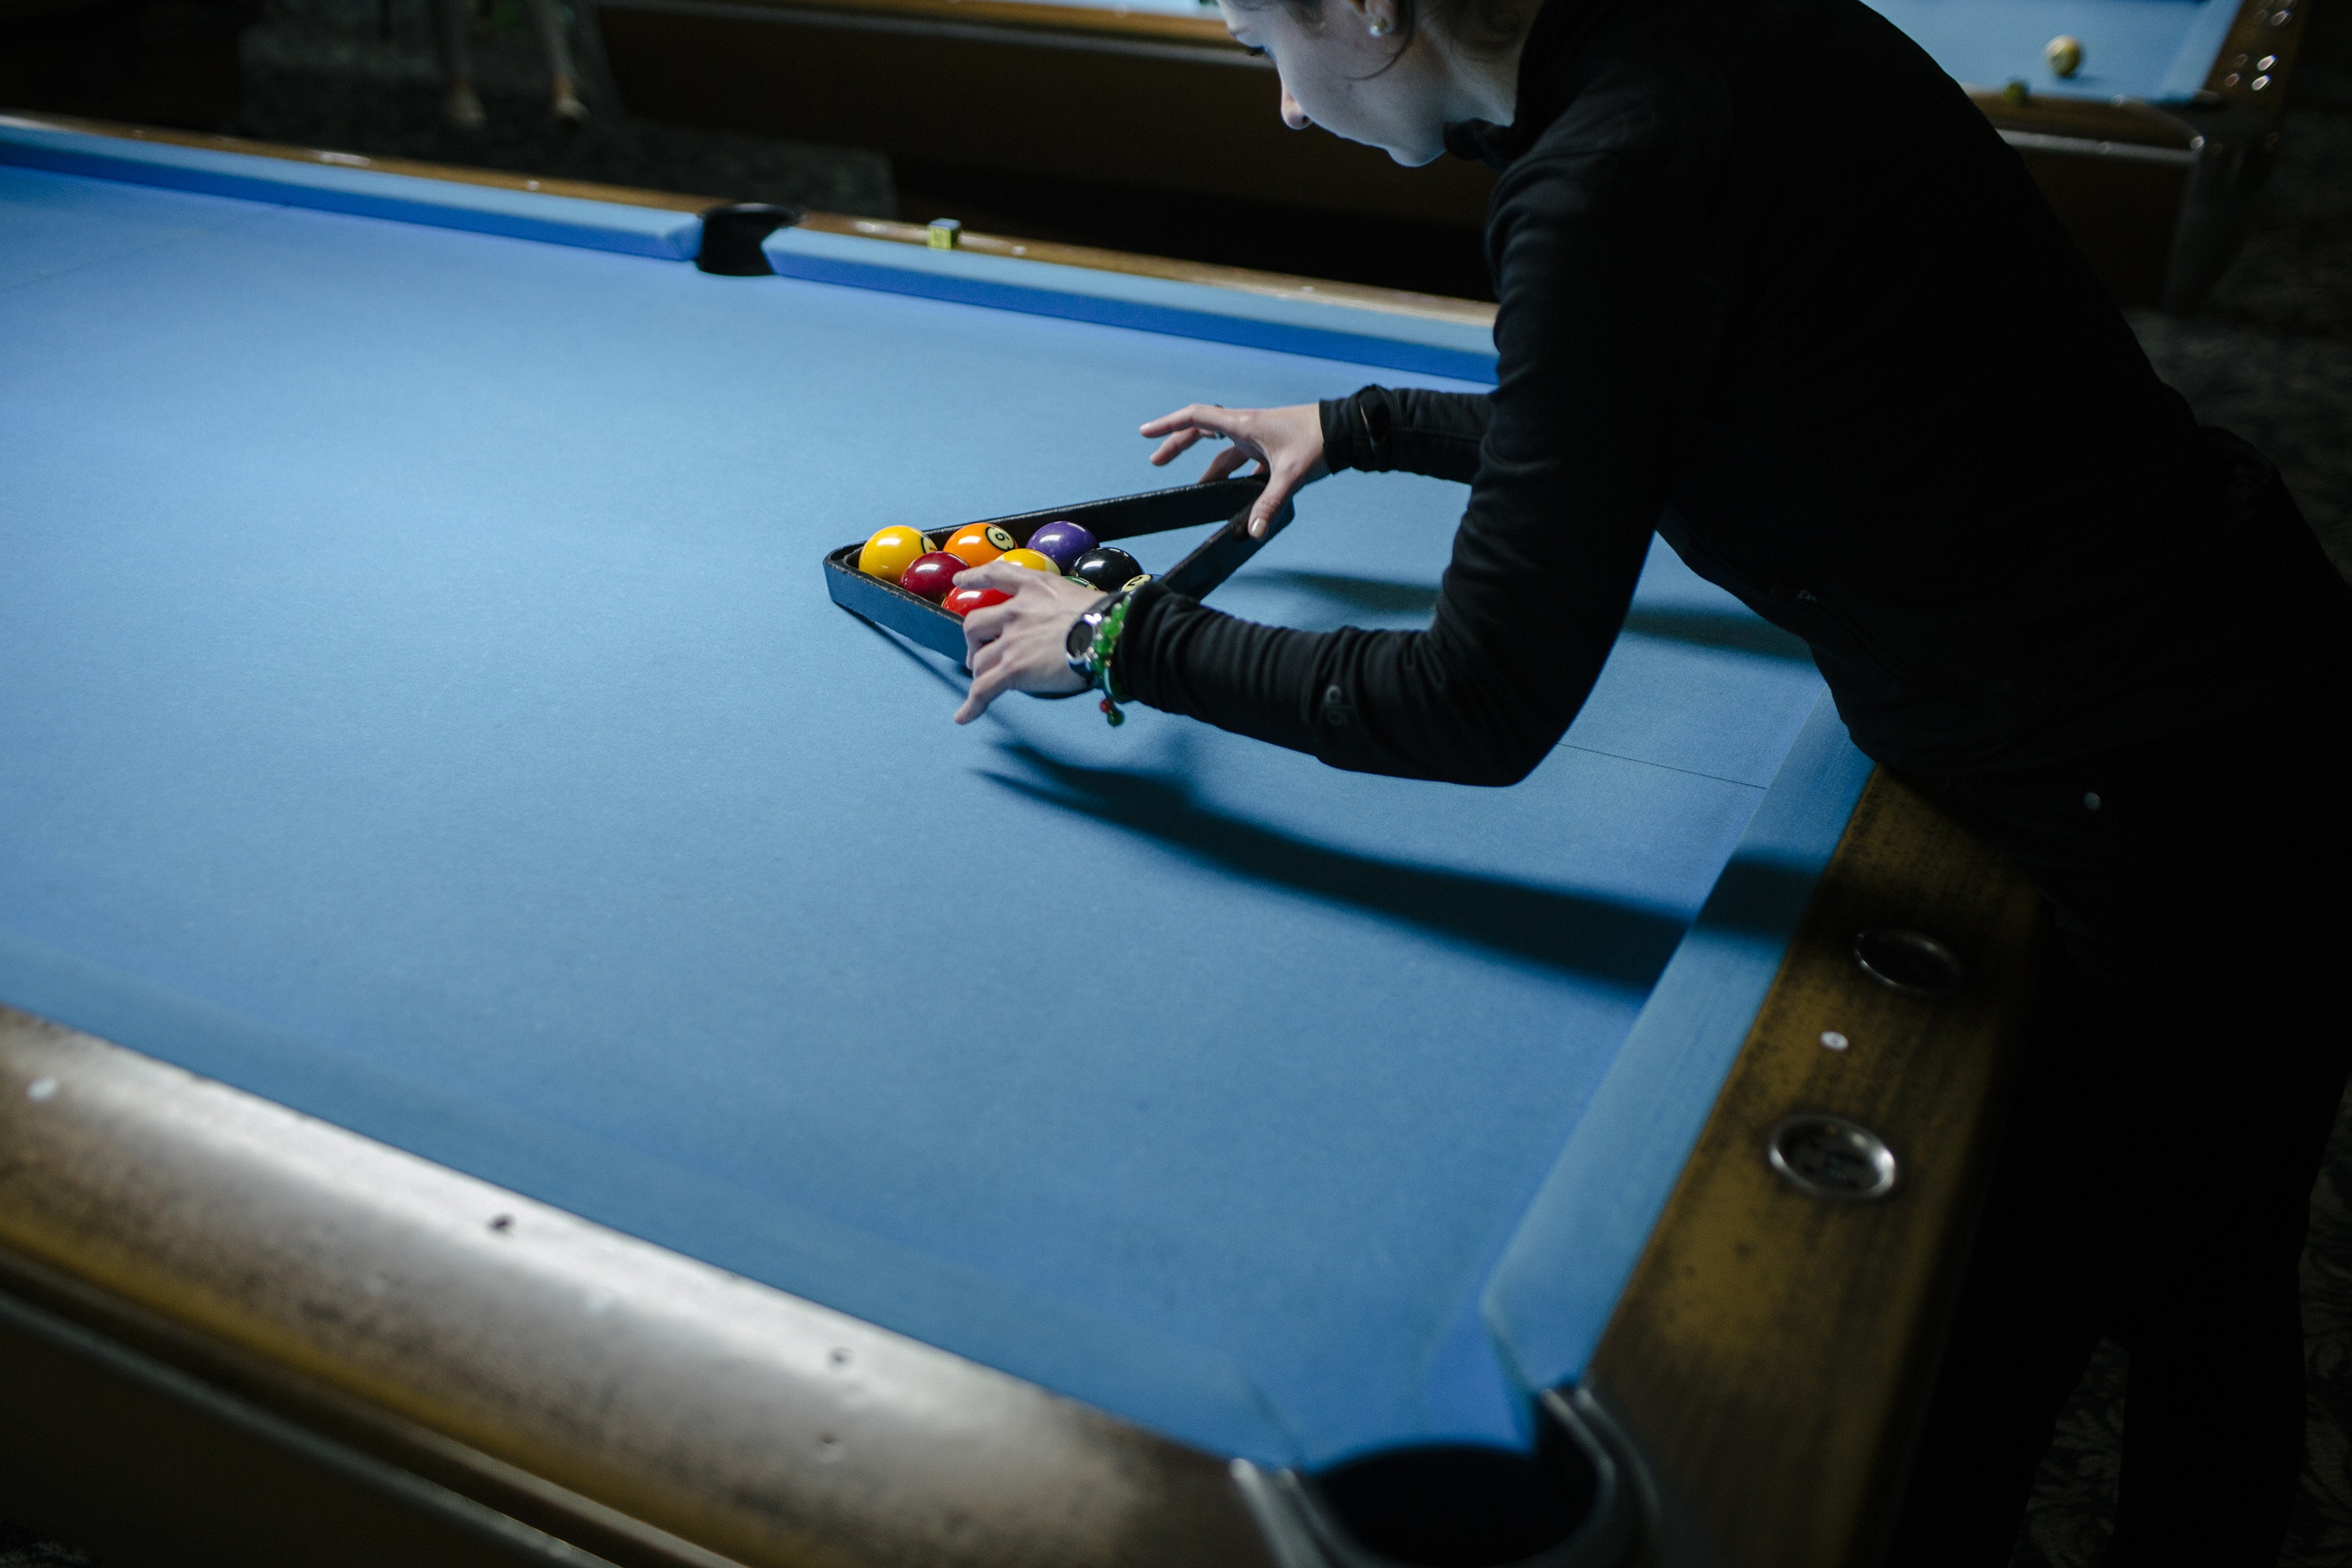 Soldiers play pool and then rack each others balls